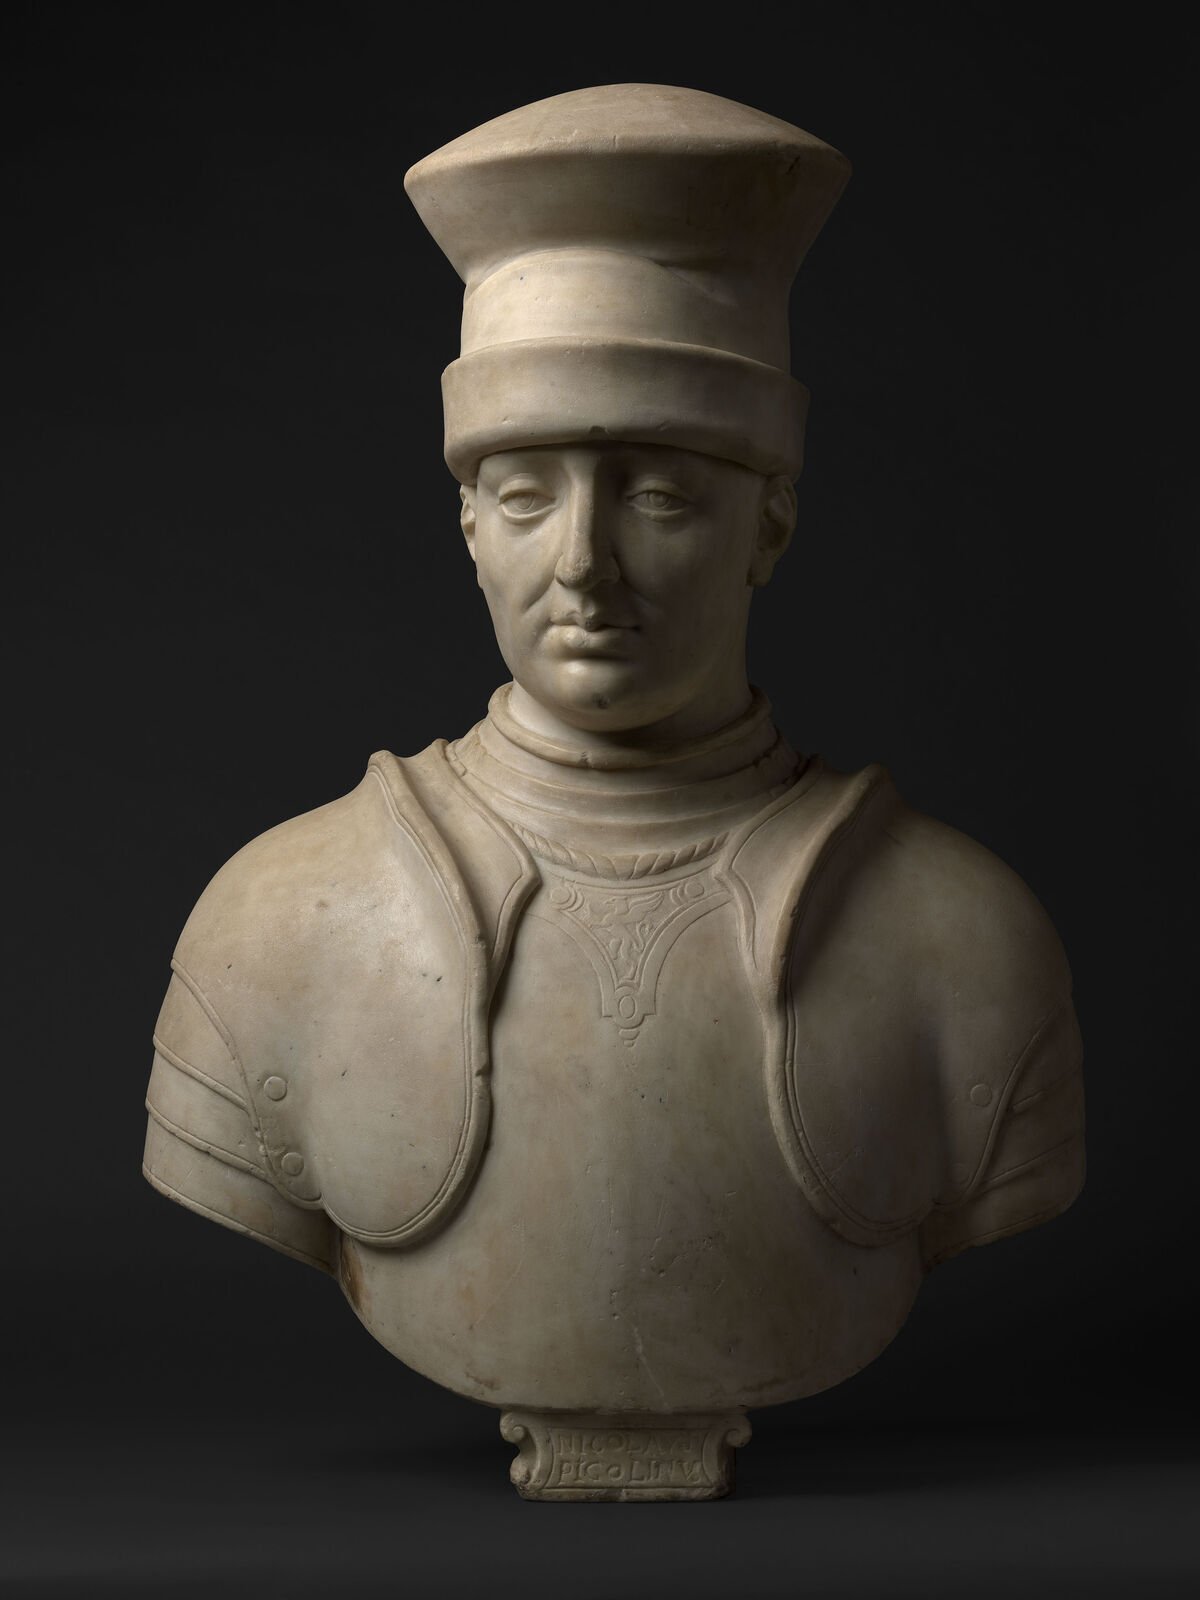 Stoldo Lorenzi, Bust of Niccolò Piccinino, 1439/1442. Courtesy of Daniel Katz Ltd.